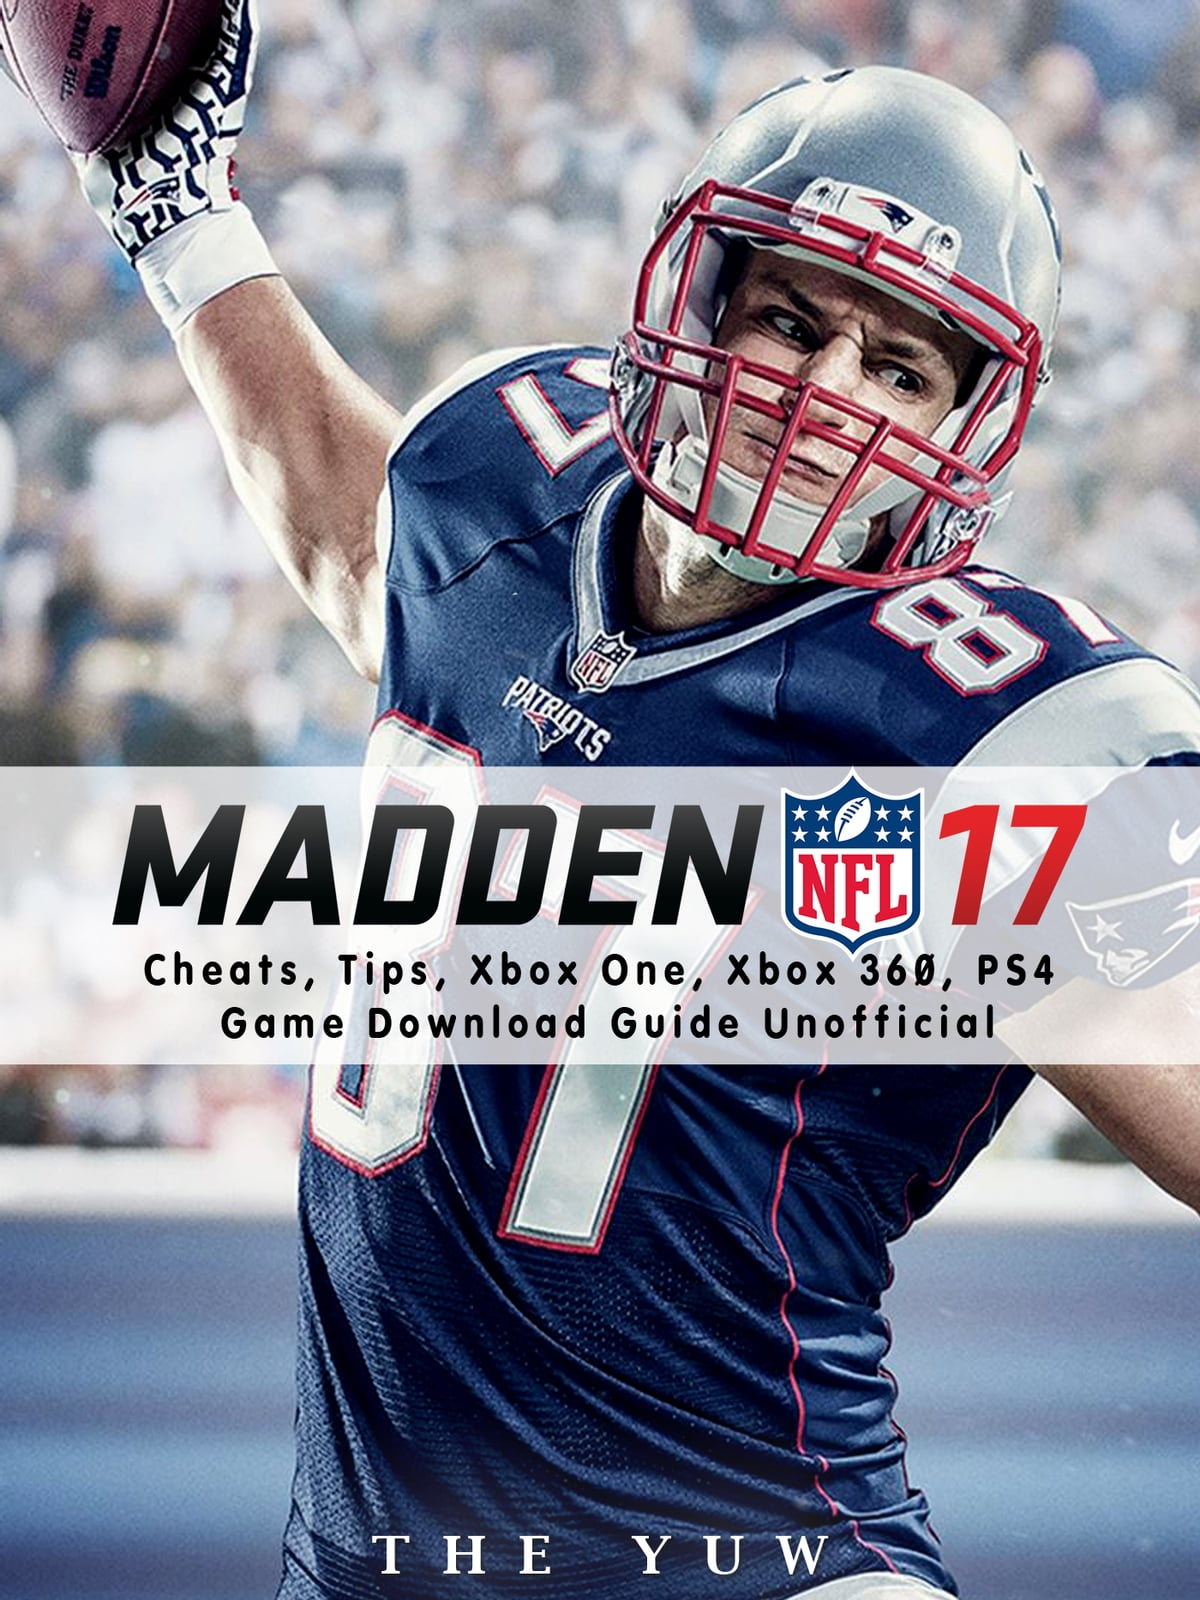 acc5bb8b42 Madden NFL 17 Cheats